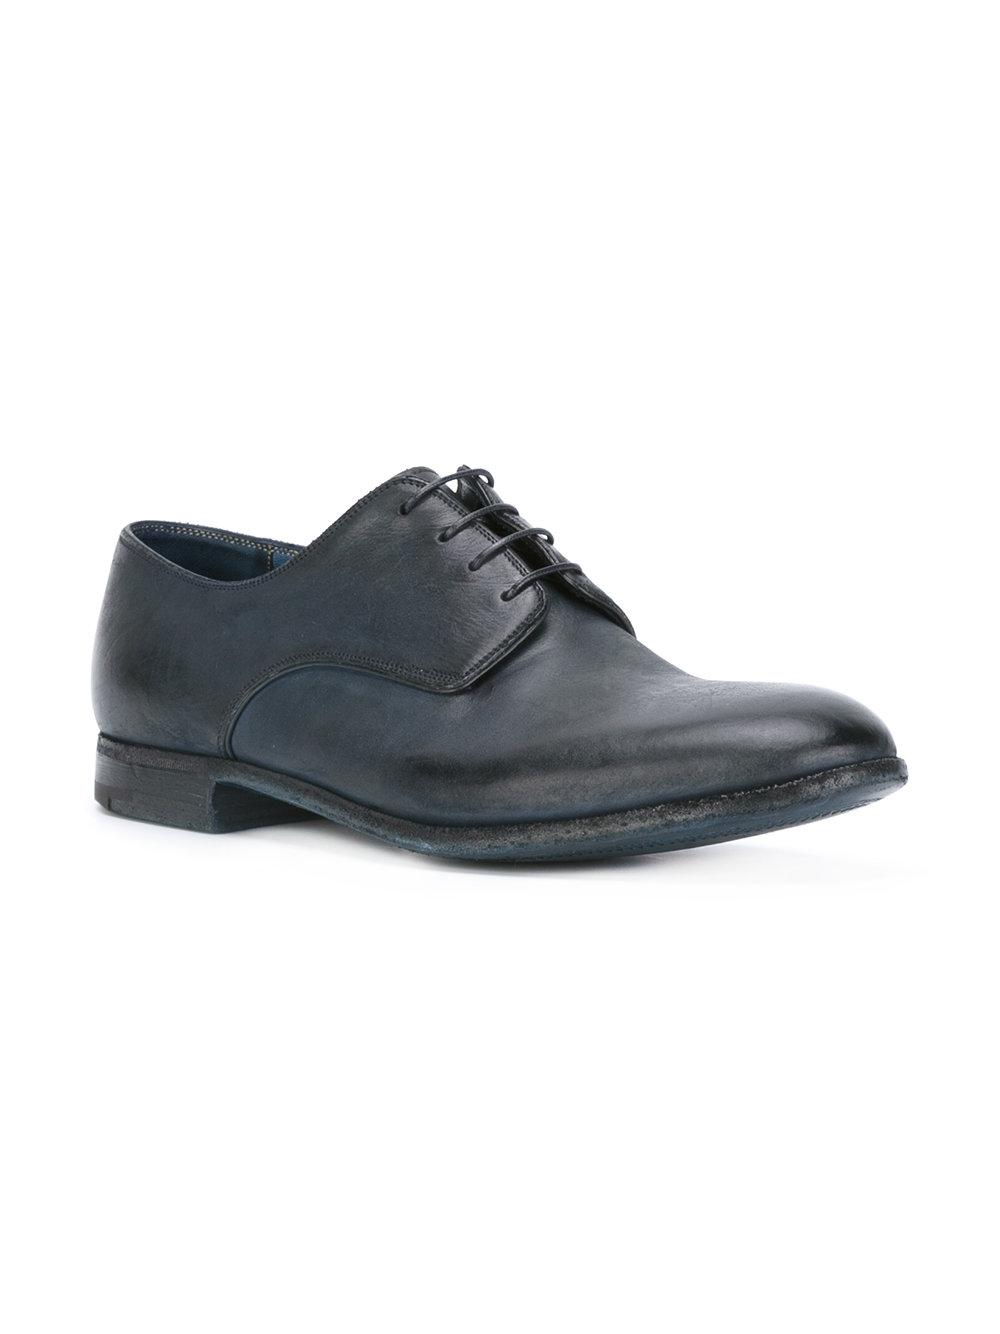 Premiata Leather Lace-up Shoes in Blue for Men